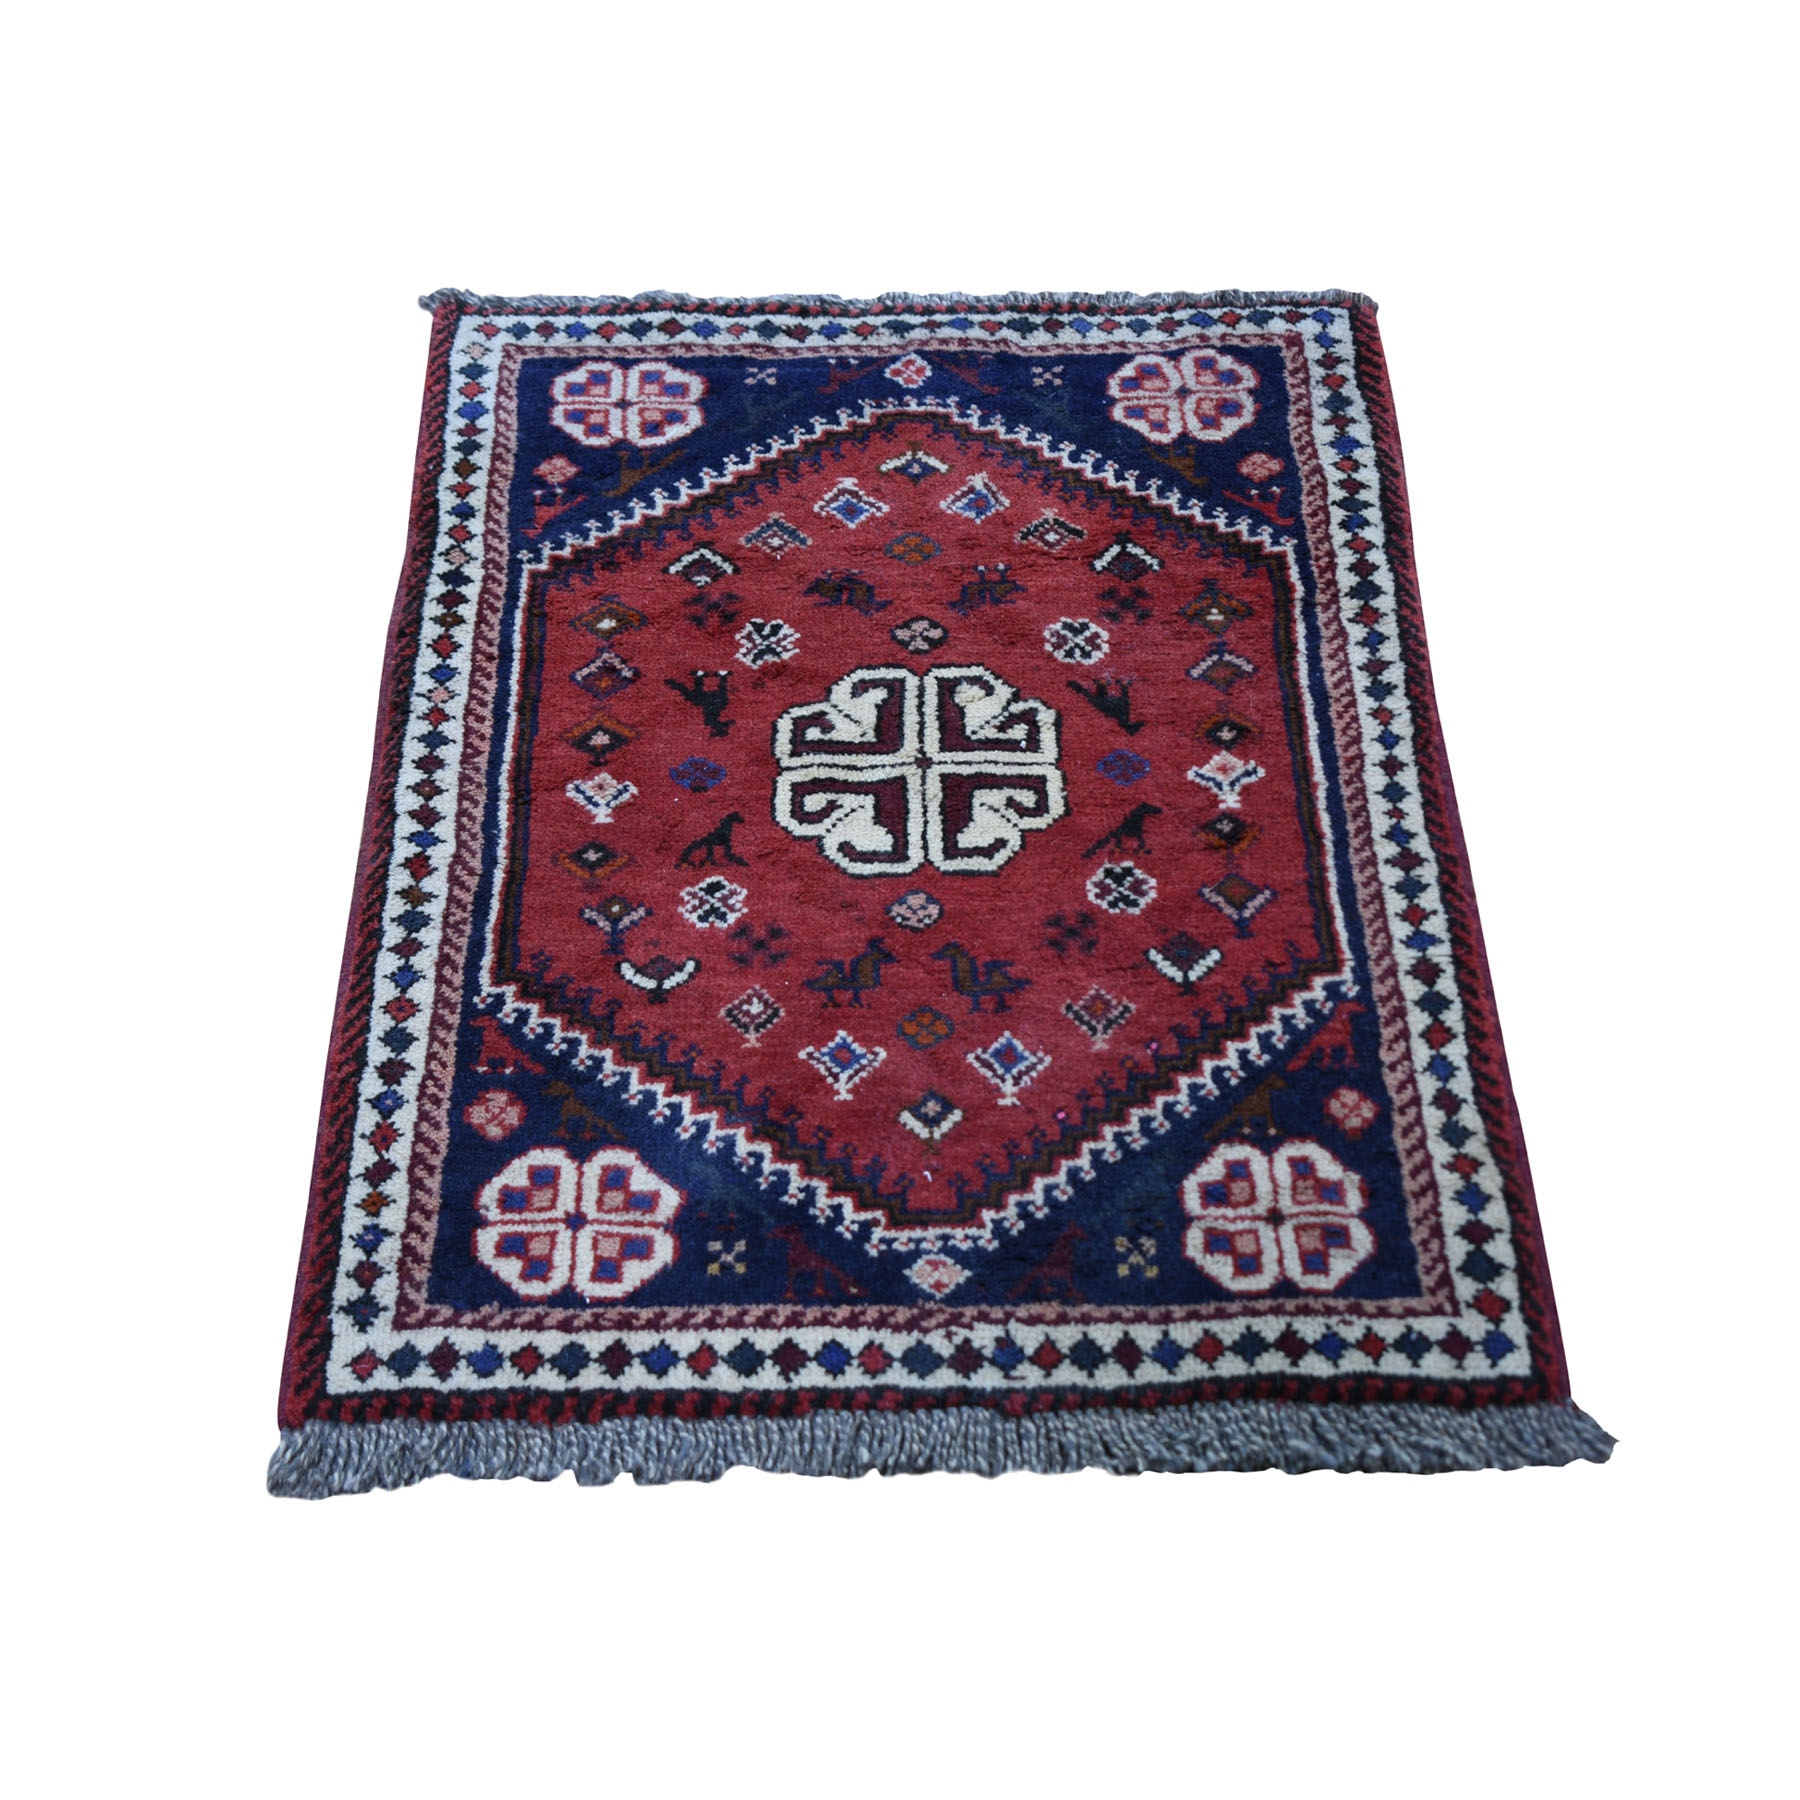 "2'2""x3'2"" Red New Persian Shiraz Nomad Vivid Full Pile Hand Woven Bohemian Rug"